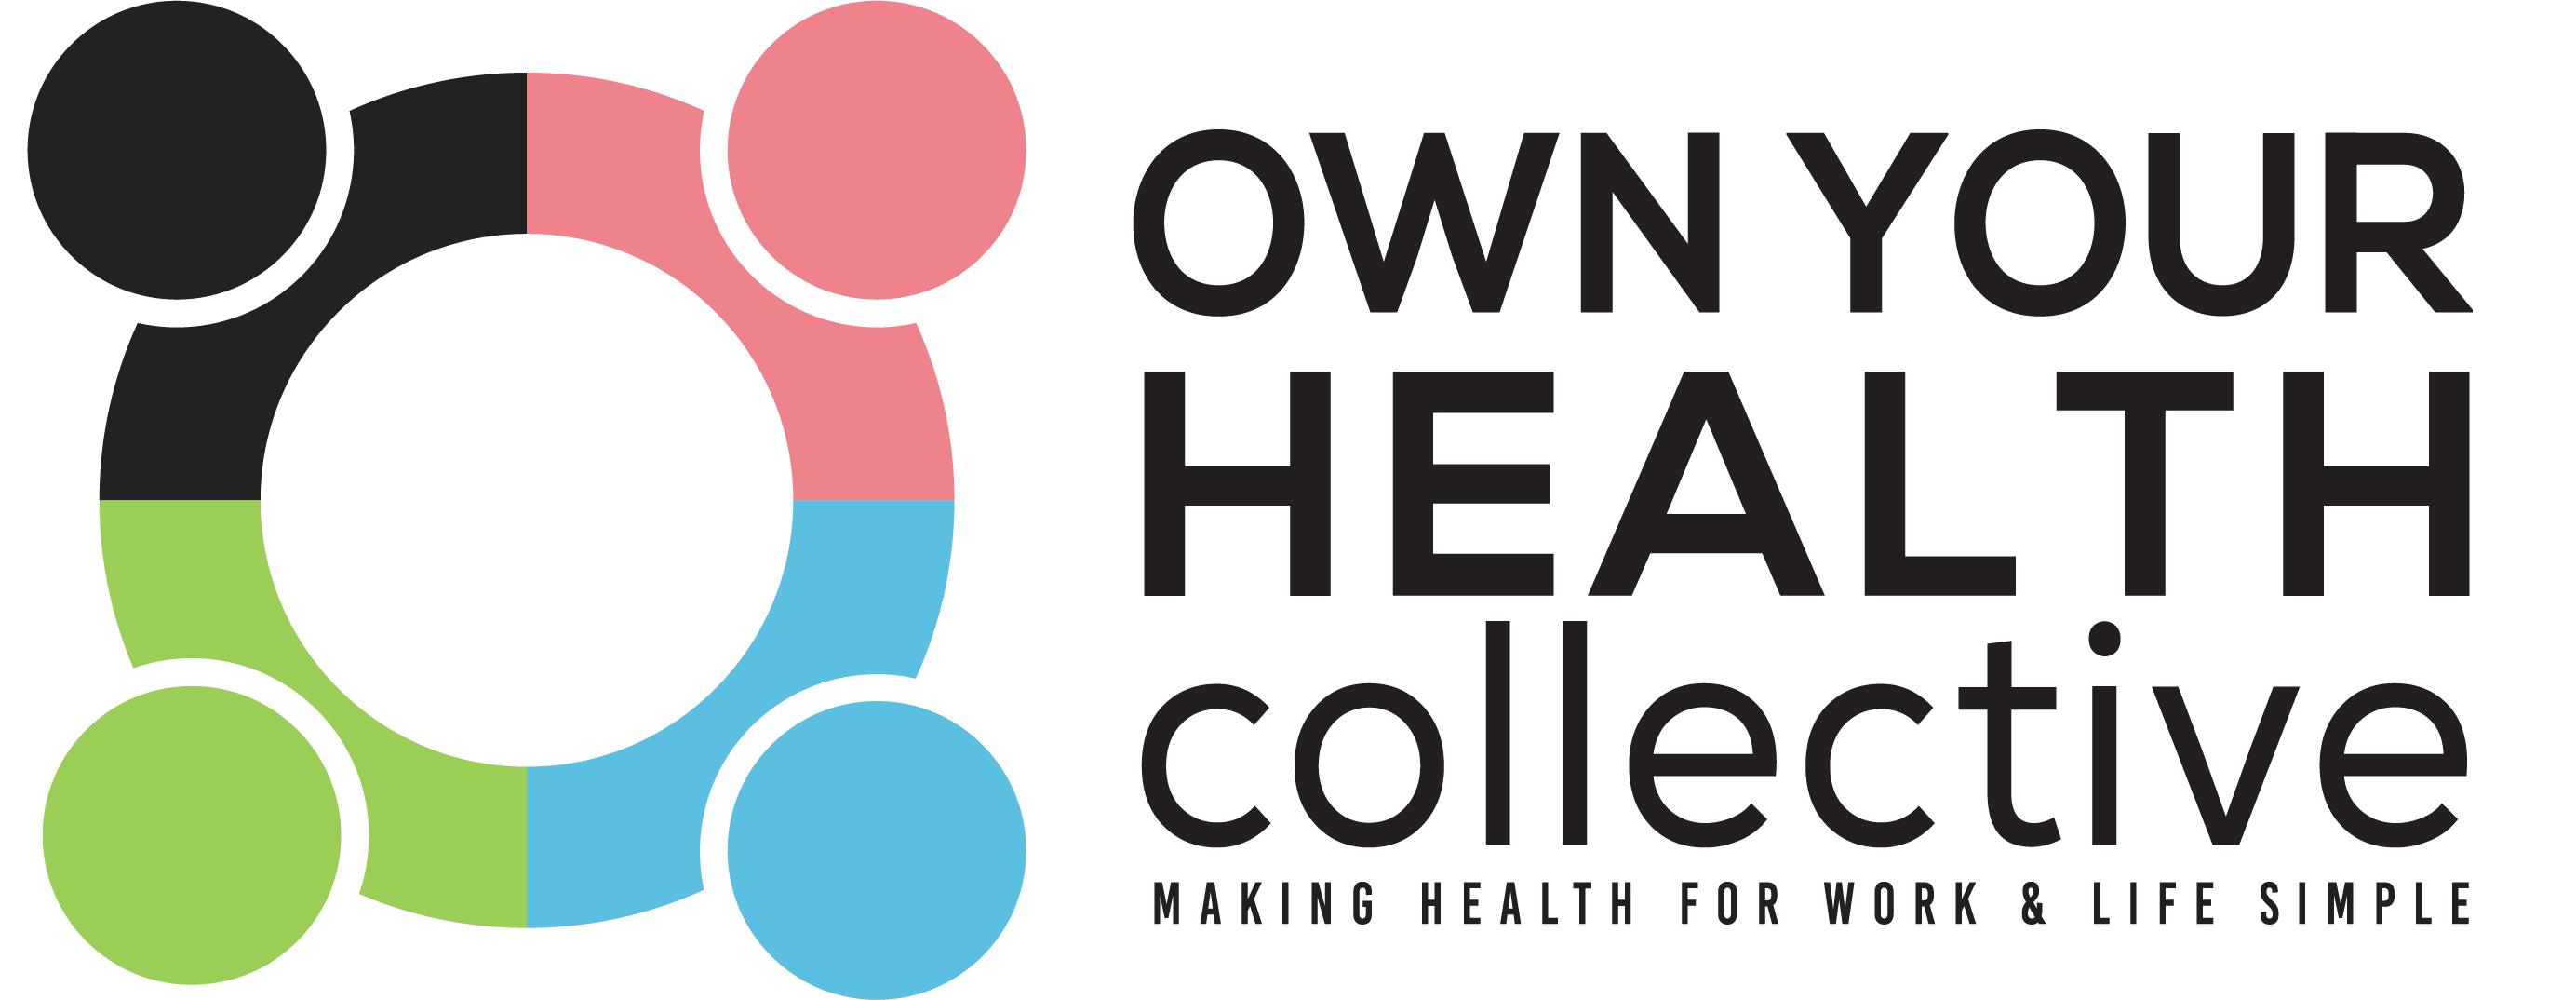 Own Your Heath Collective